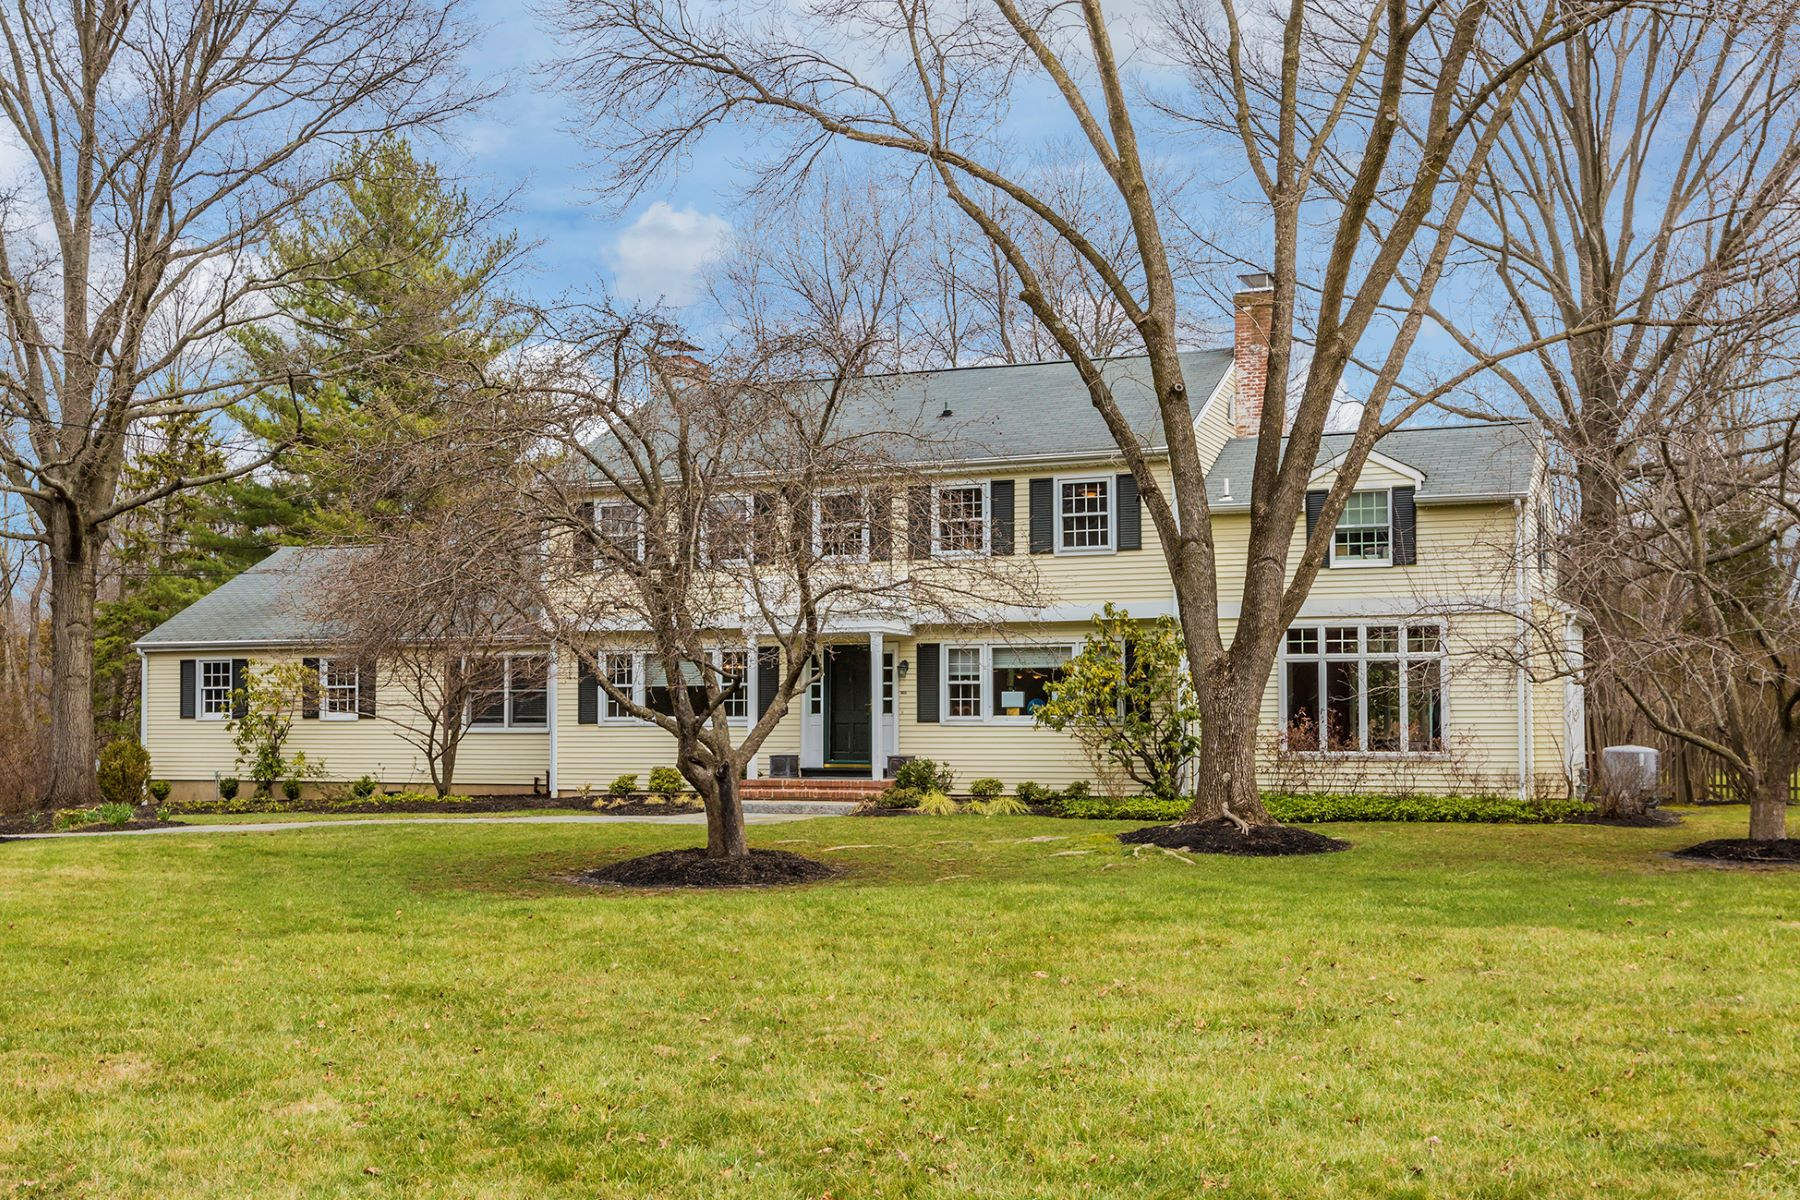 Villa per Vendita alle ore Modern Character and Classic Colonial Lines - Hopewell Township 32 Nelson Ridge Road Princeton, New Jersey, 08540 Stati Uniti